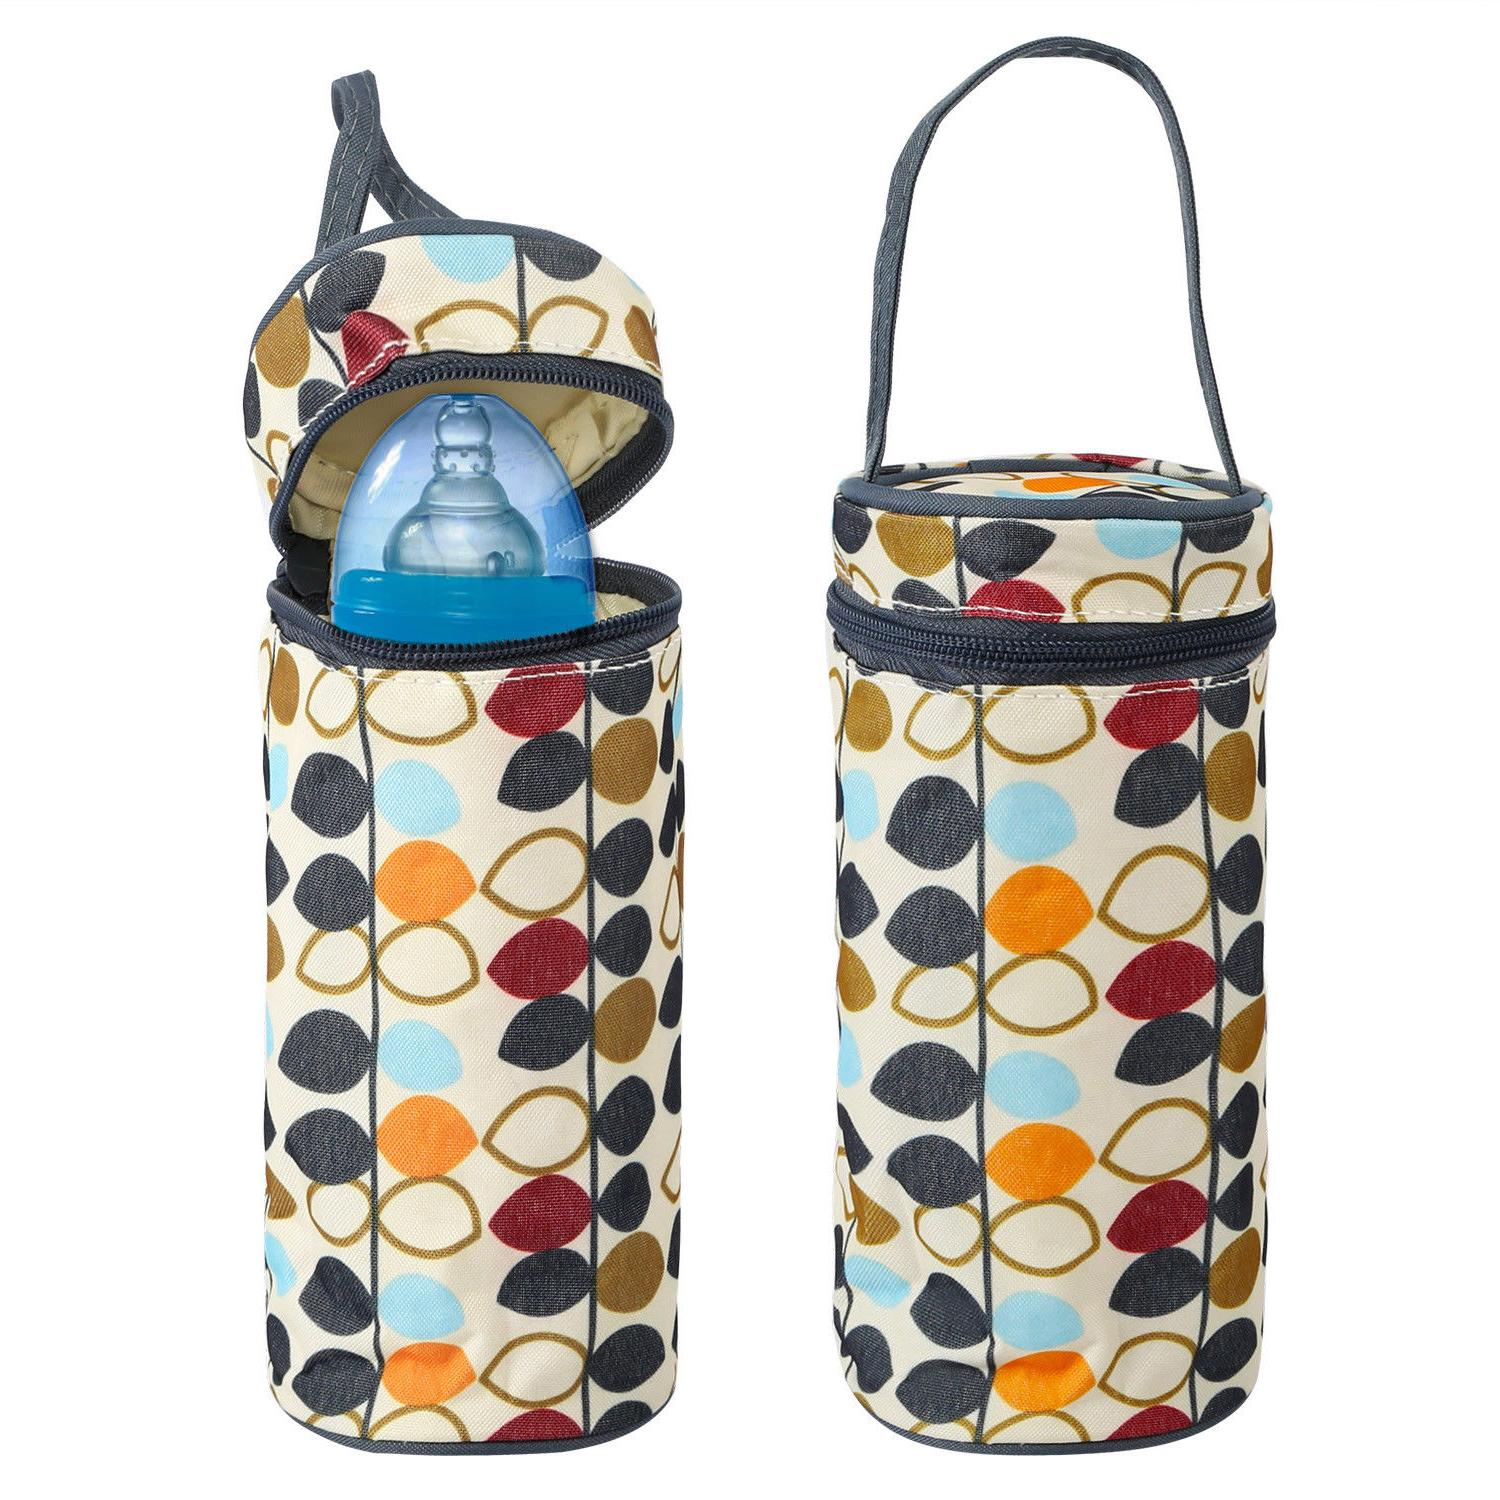 Maternity Tote Parents with Changing Pad